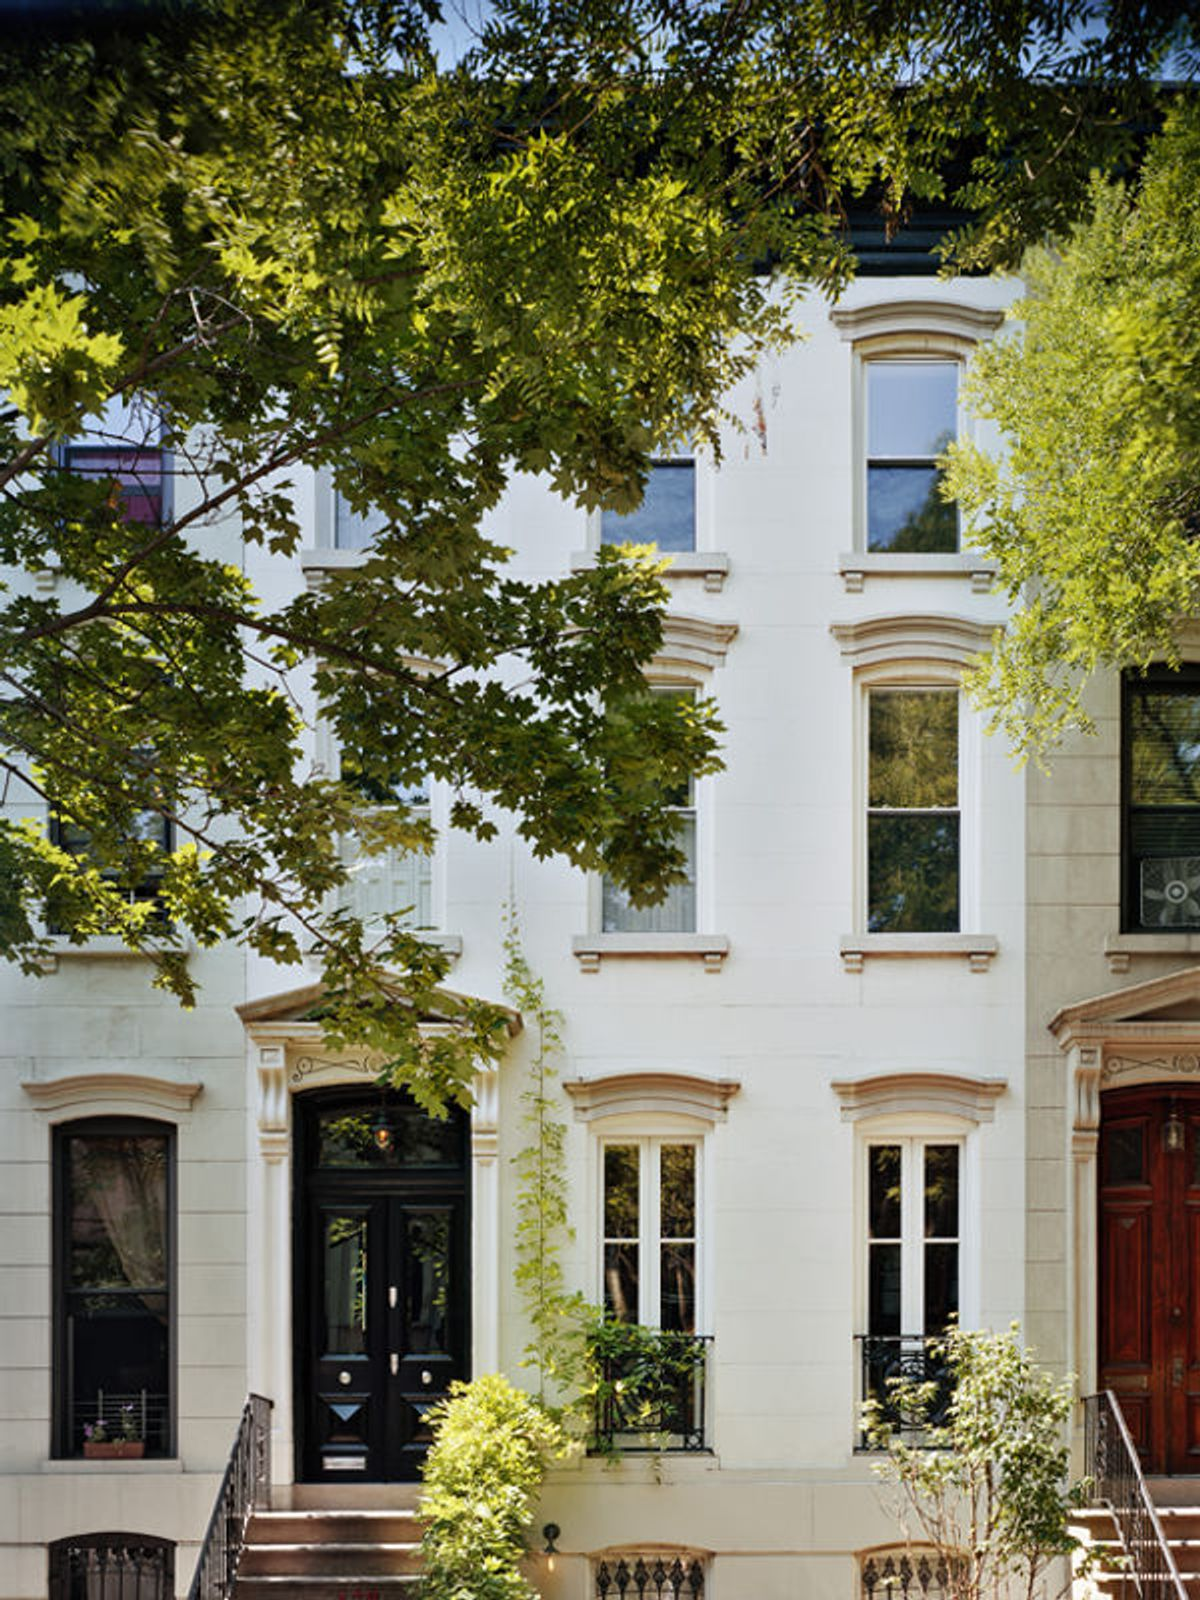 178 Garfield Place, Brooklyn NY Townhouse - New York City Real Estate